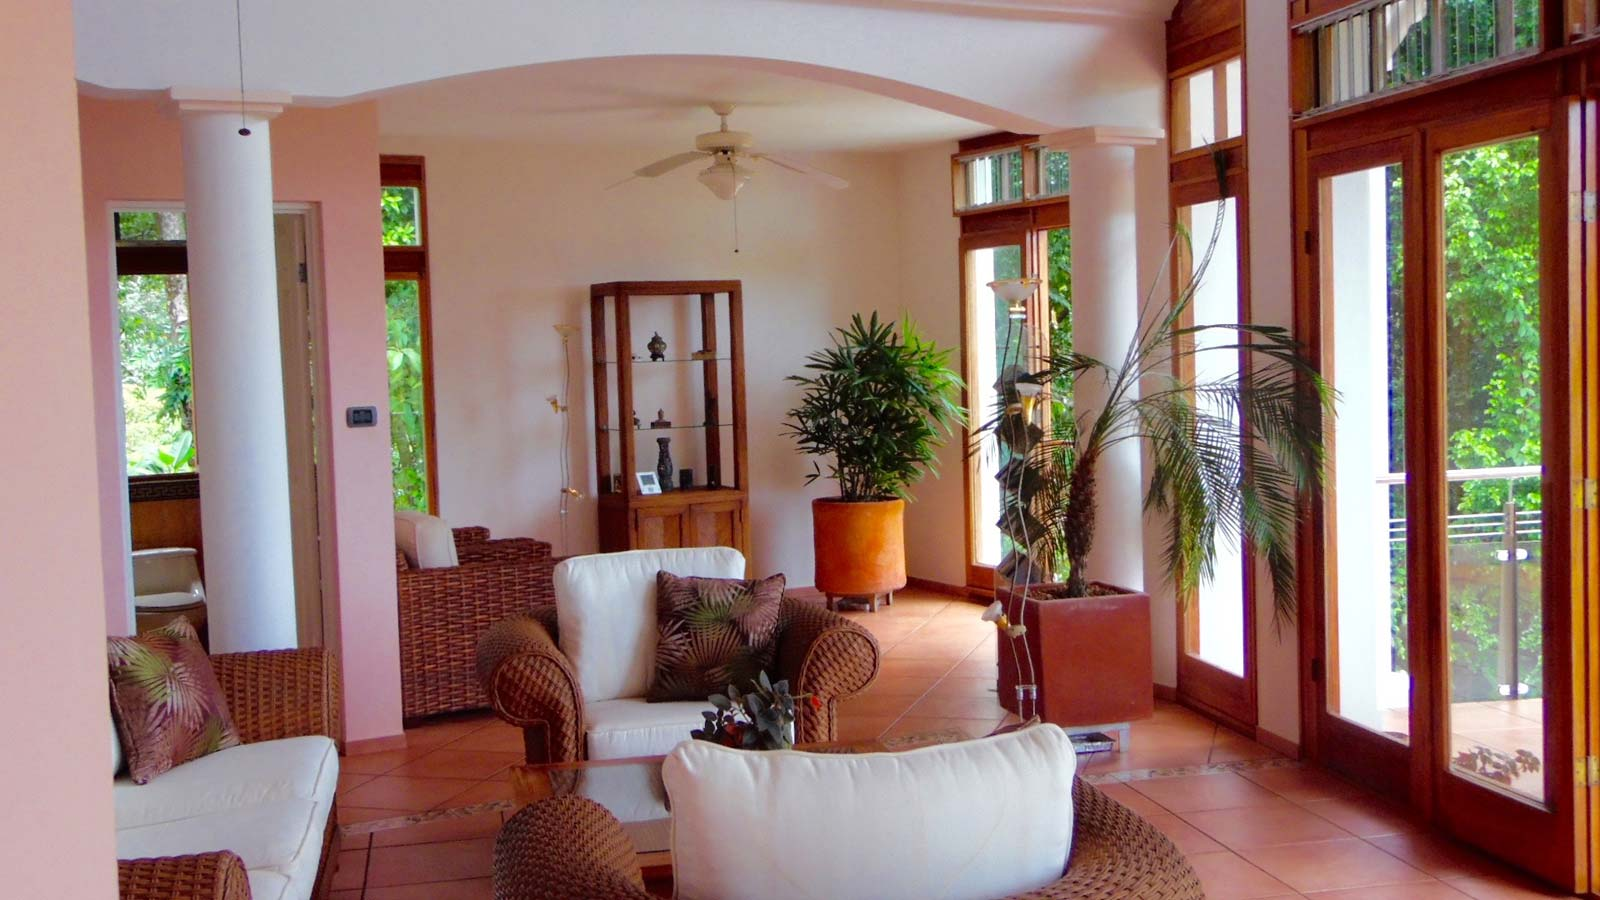 costa rica real estate, Residential, Oceanview, ocean view properties, Beach Town, Seaside Home,